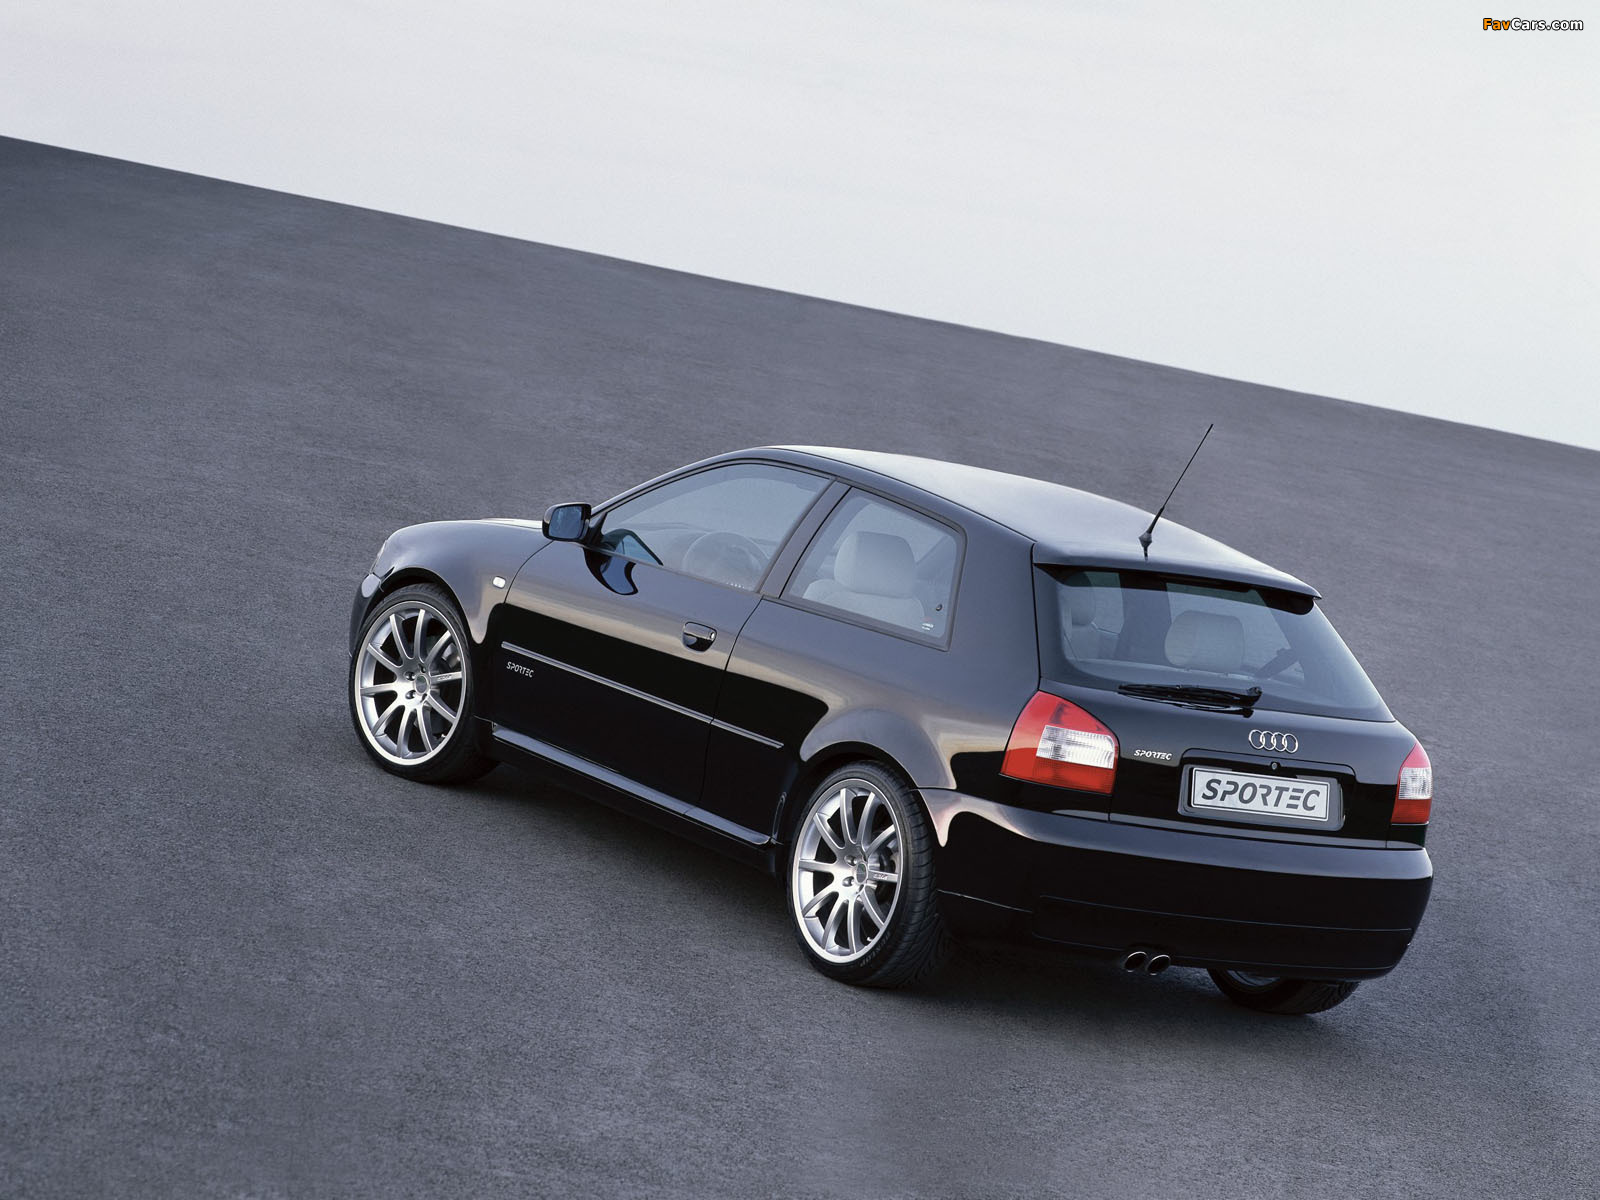 Sportec Audi A3 8l 2001 2003 Wallpapers 1600x1200